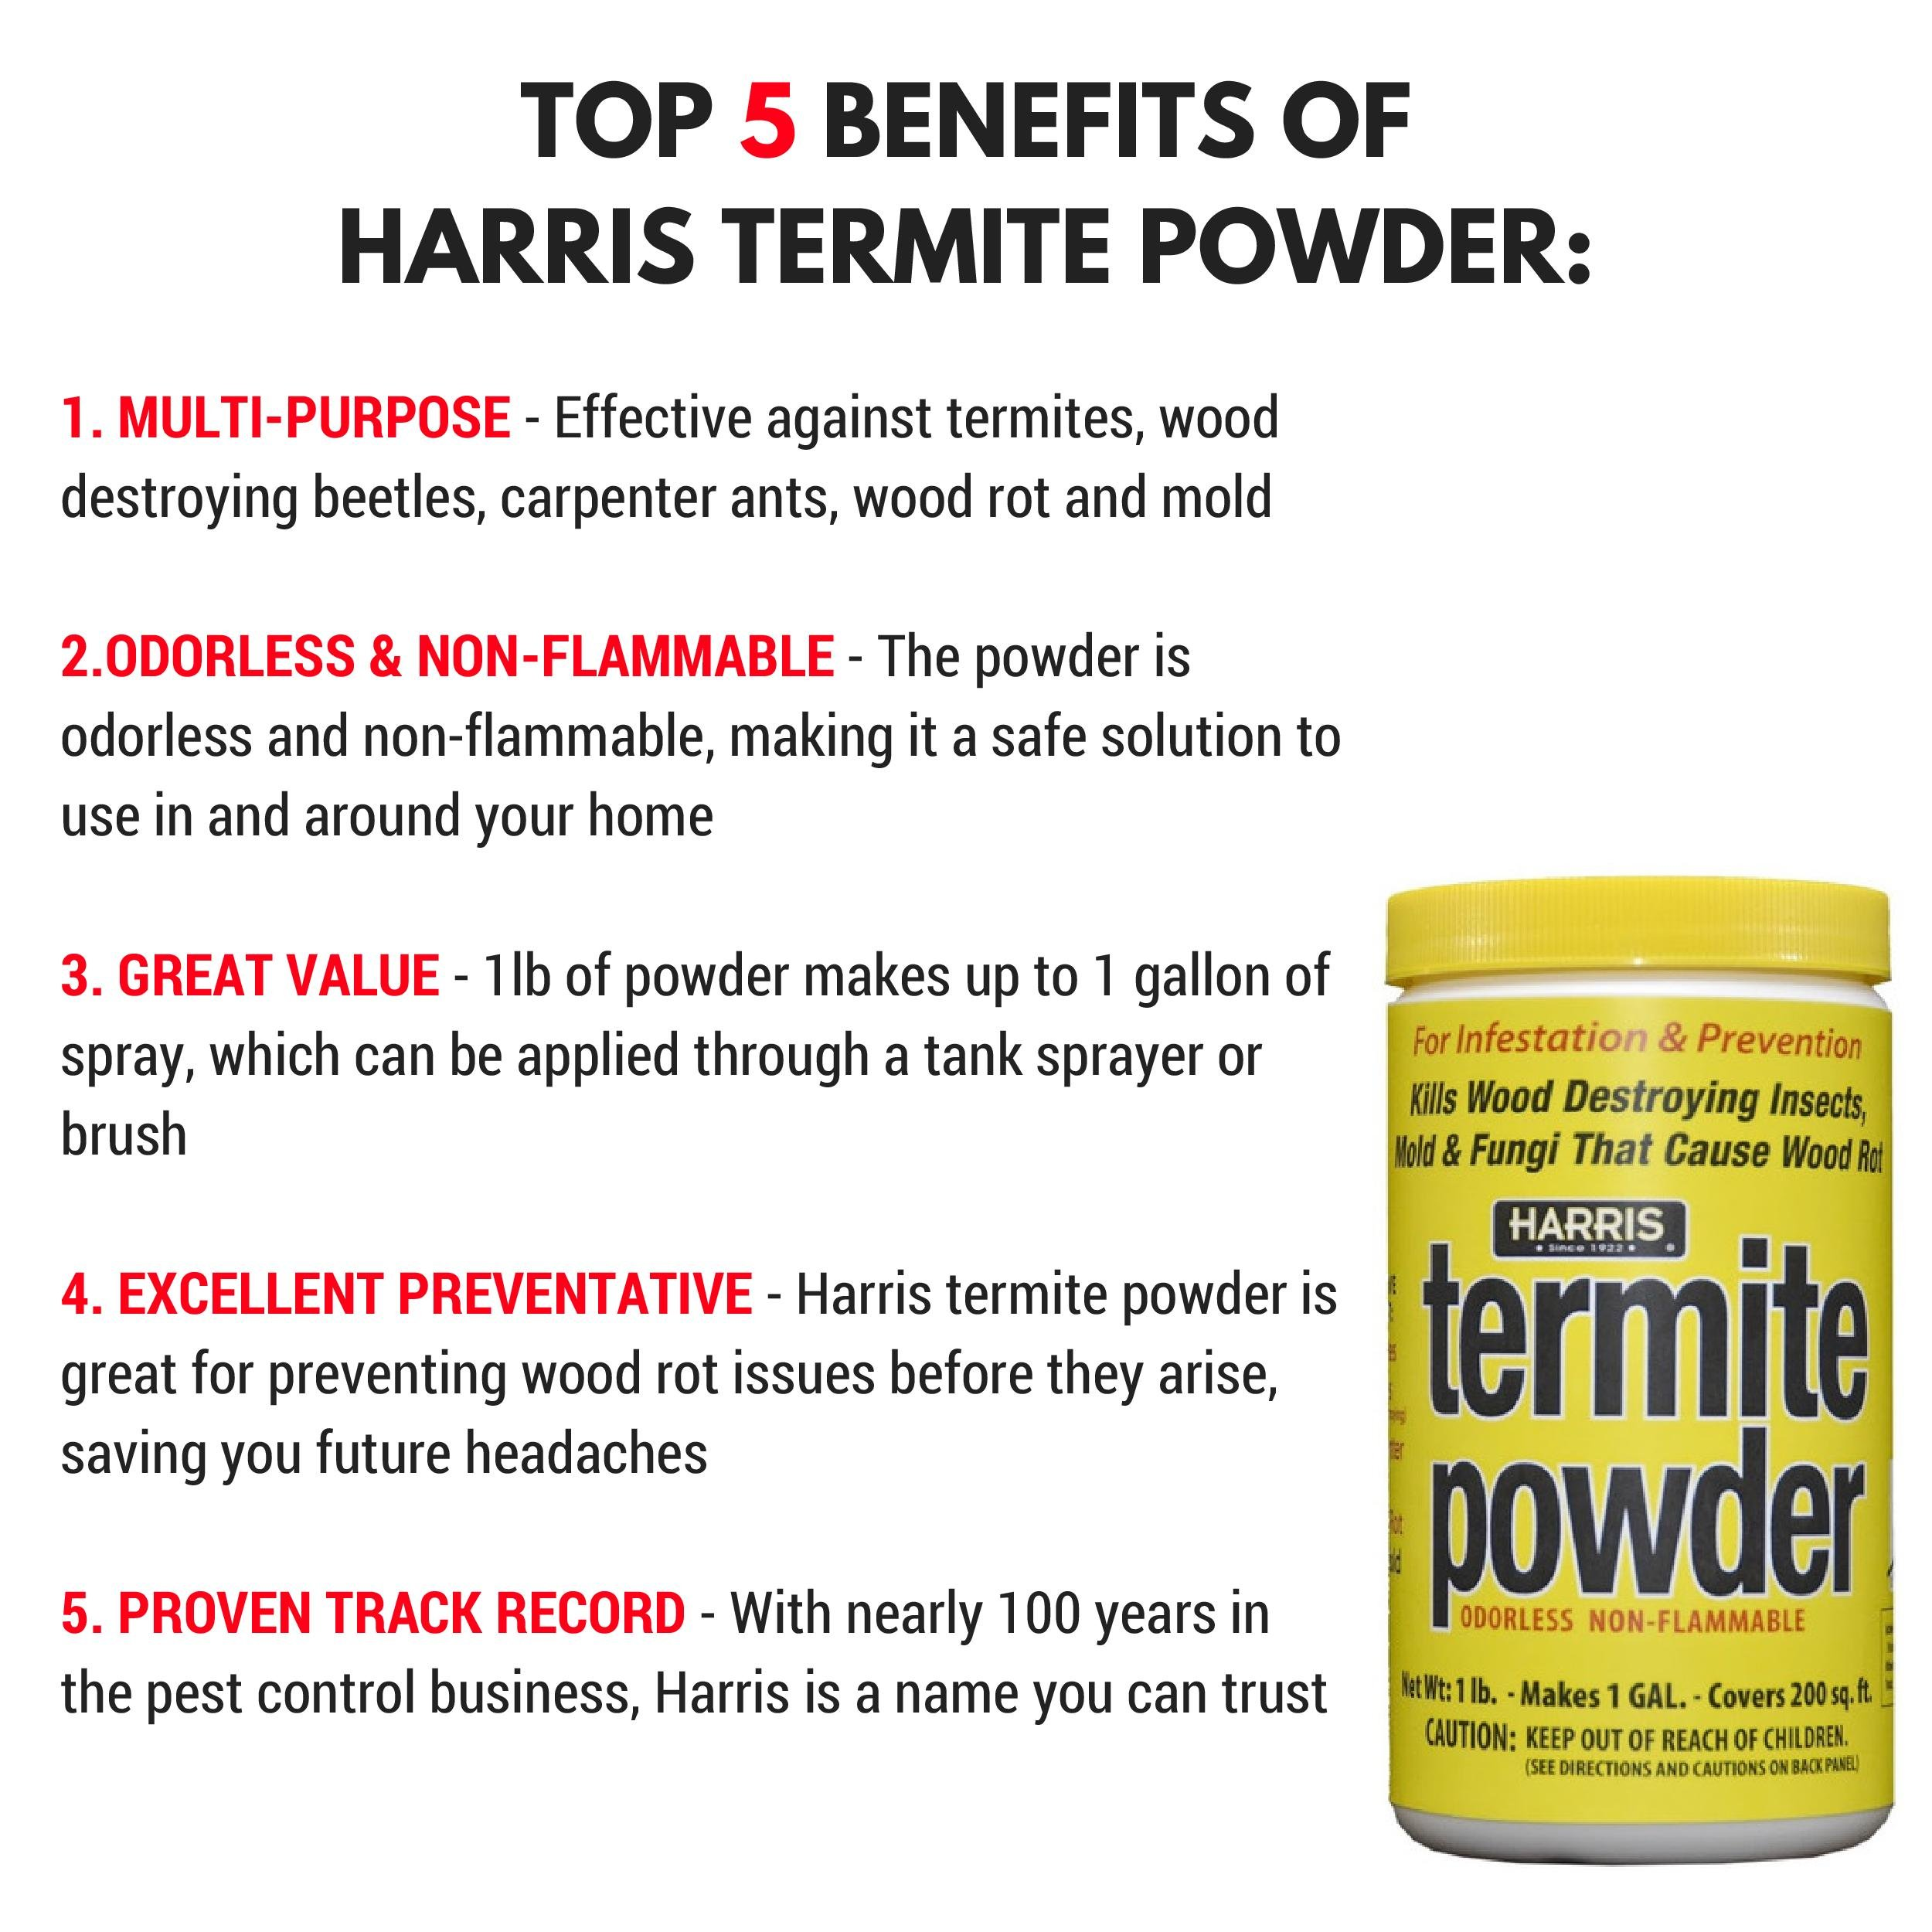 Harris Termite Treatment & Mold Killer, 16oz Powder, Makes 1 Gallon Liquid Spray for Preventing, Controlling and Killing Termites, Wood Destroying Beetles, Carpenter Ants & More